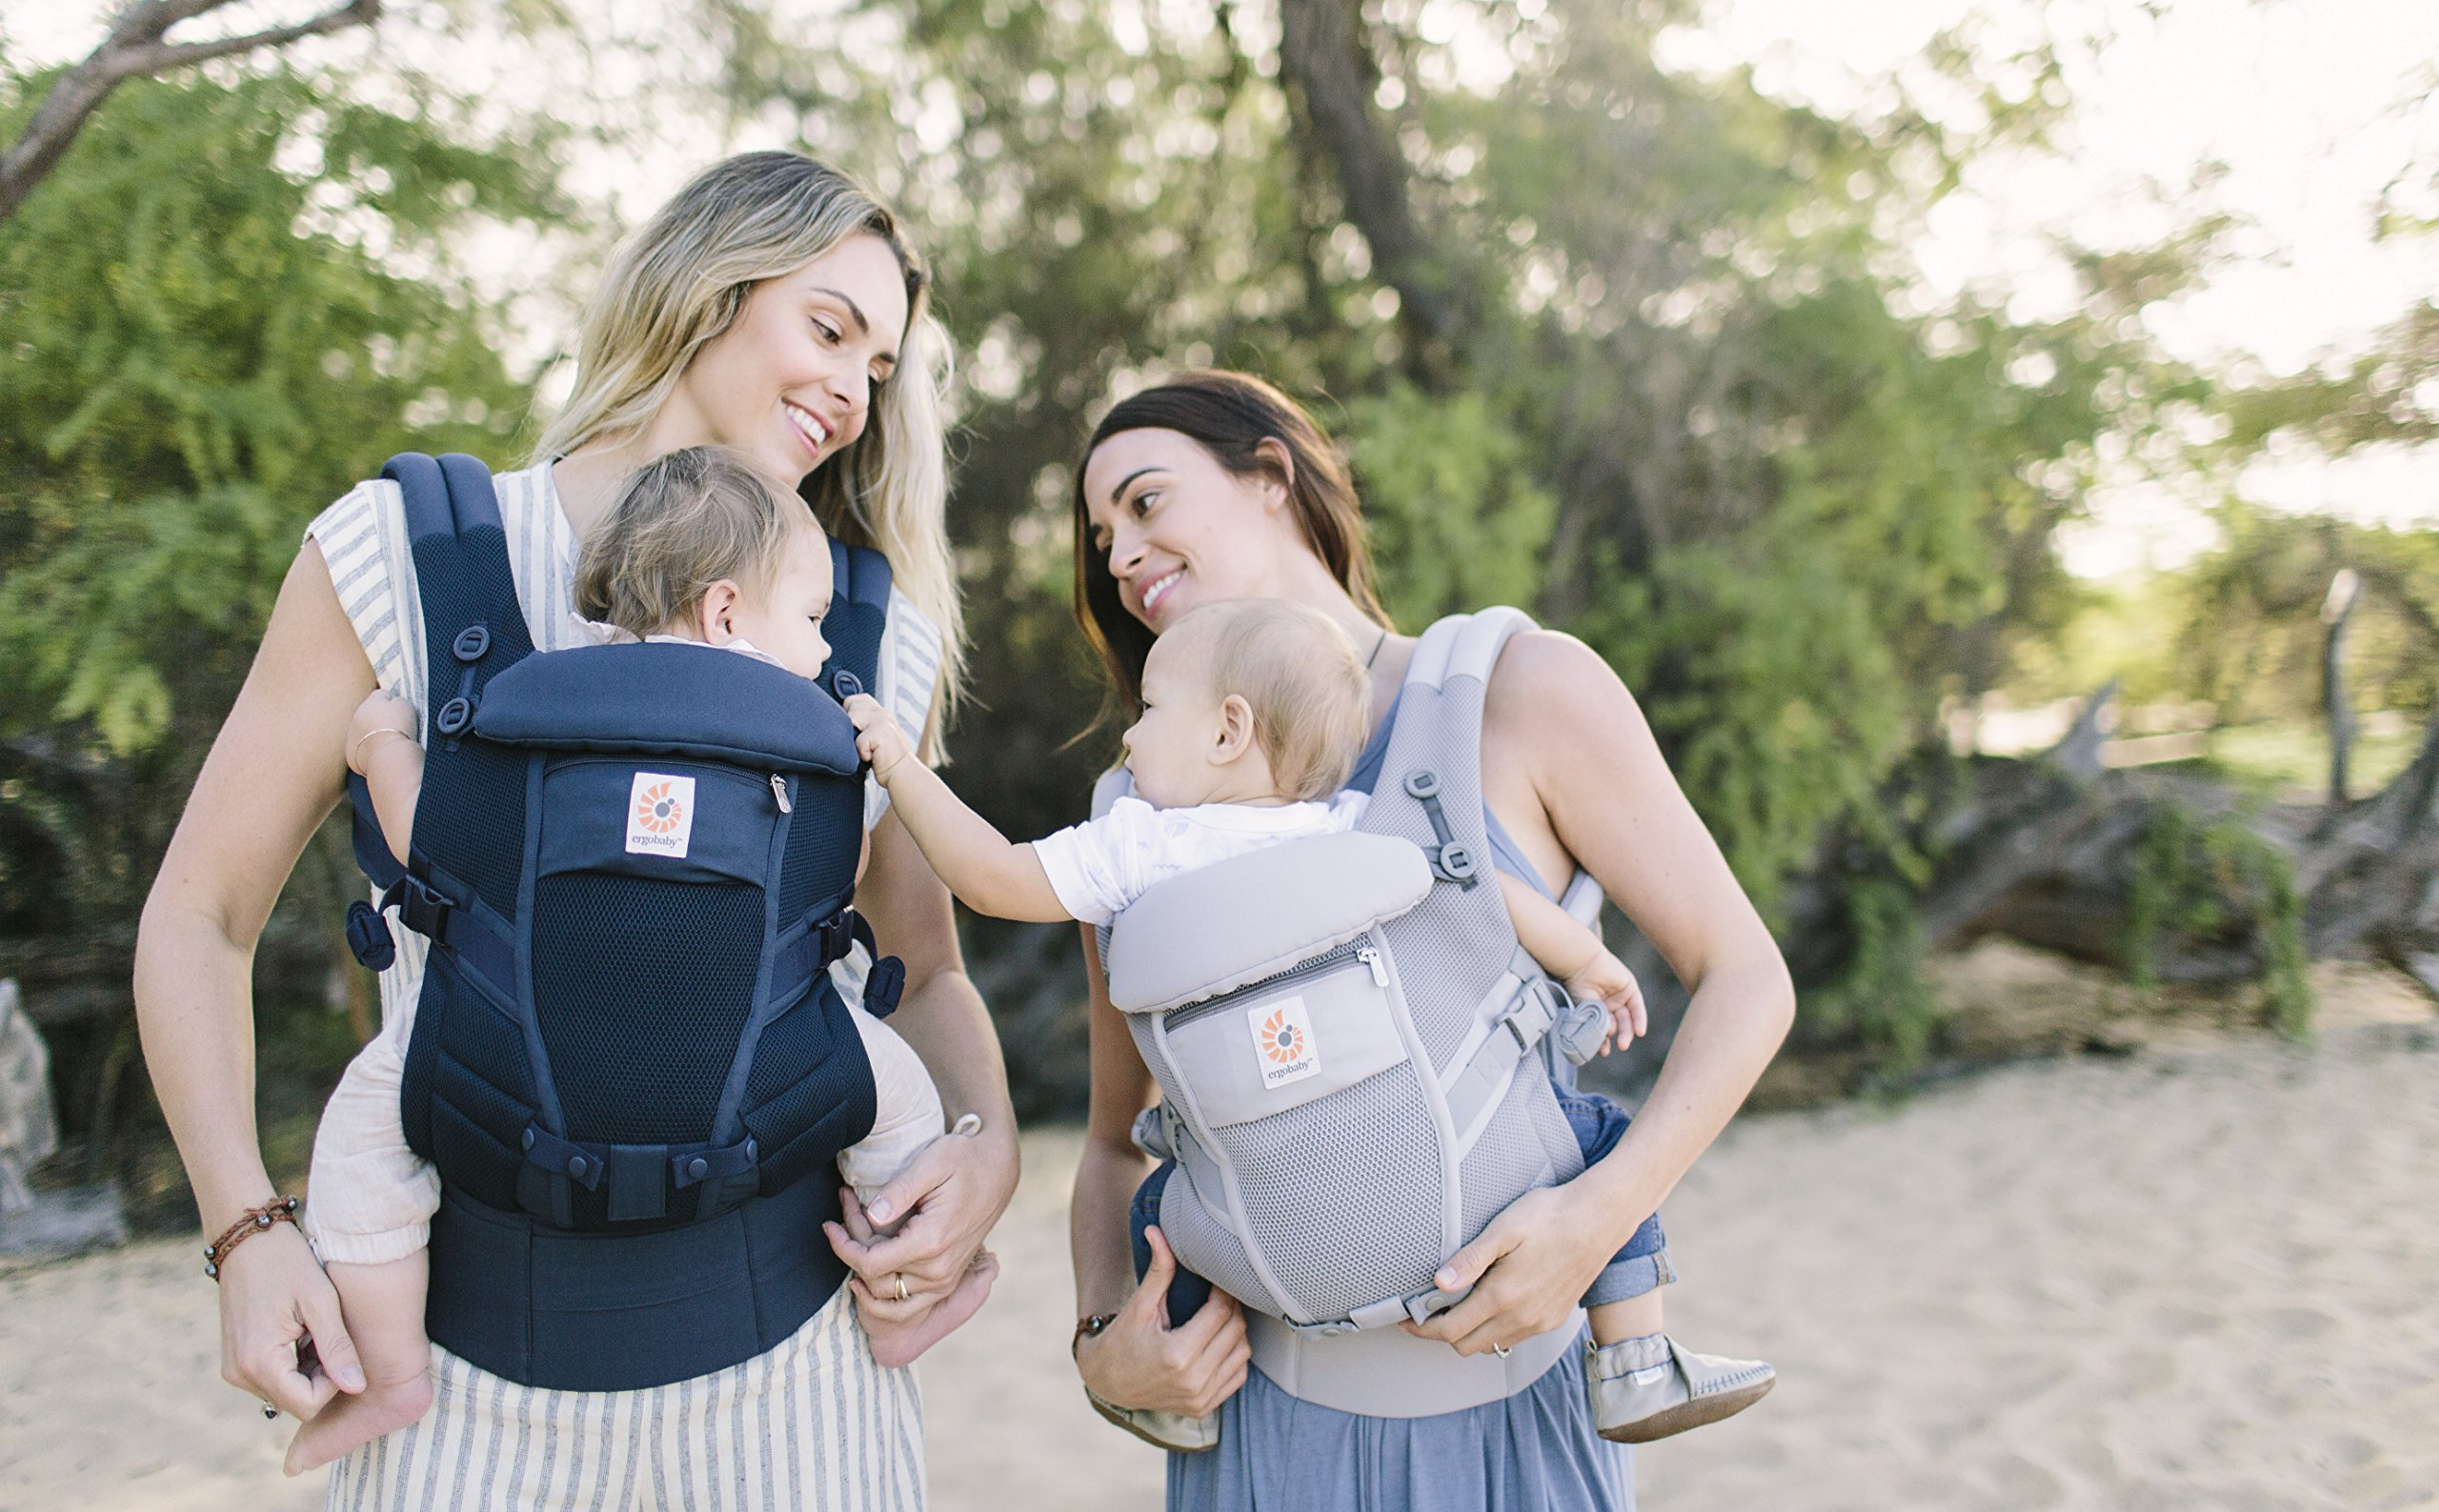 Ergobaby Baby Carrier for Newborn to Toddler up to 20kg, Adapt 3-Position Cool Air Mesh, Deep Blue Ergobaby Ergonomic bucket seat gradually adjusts to a growing baby from newborn to toddler (3.2 -20kg) No infant insert required 3 ergonomic carry positions: front-inward, hip and back 6